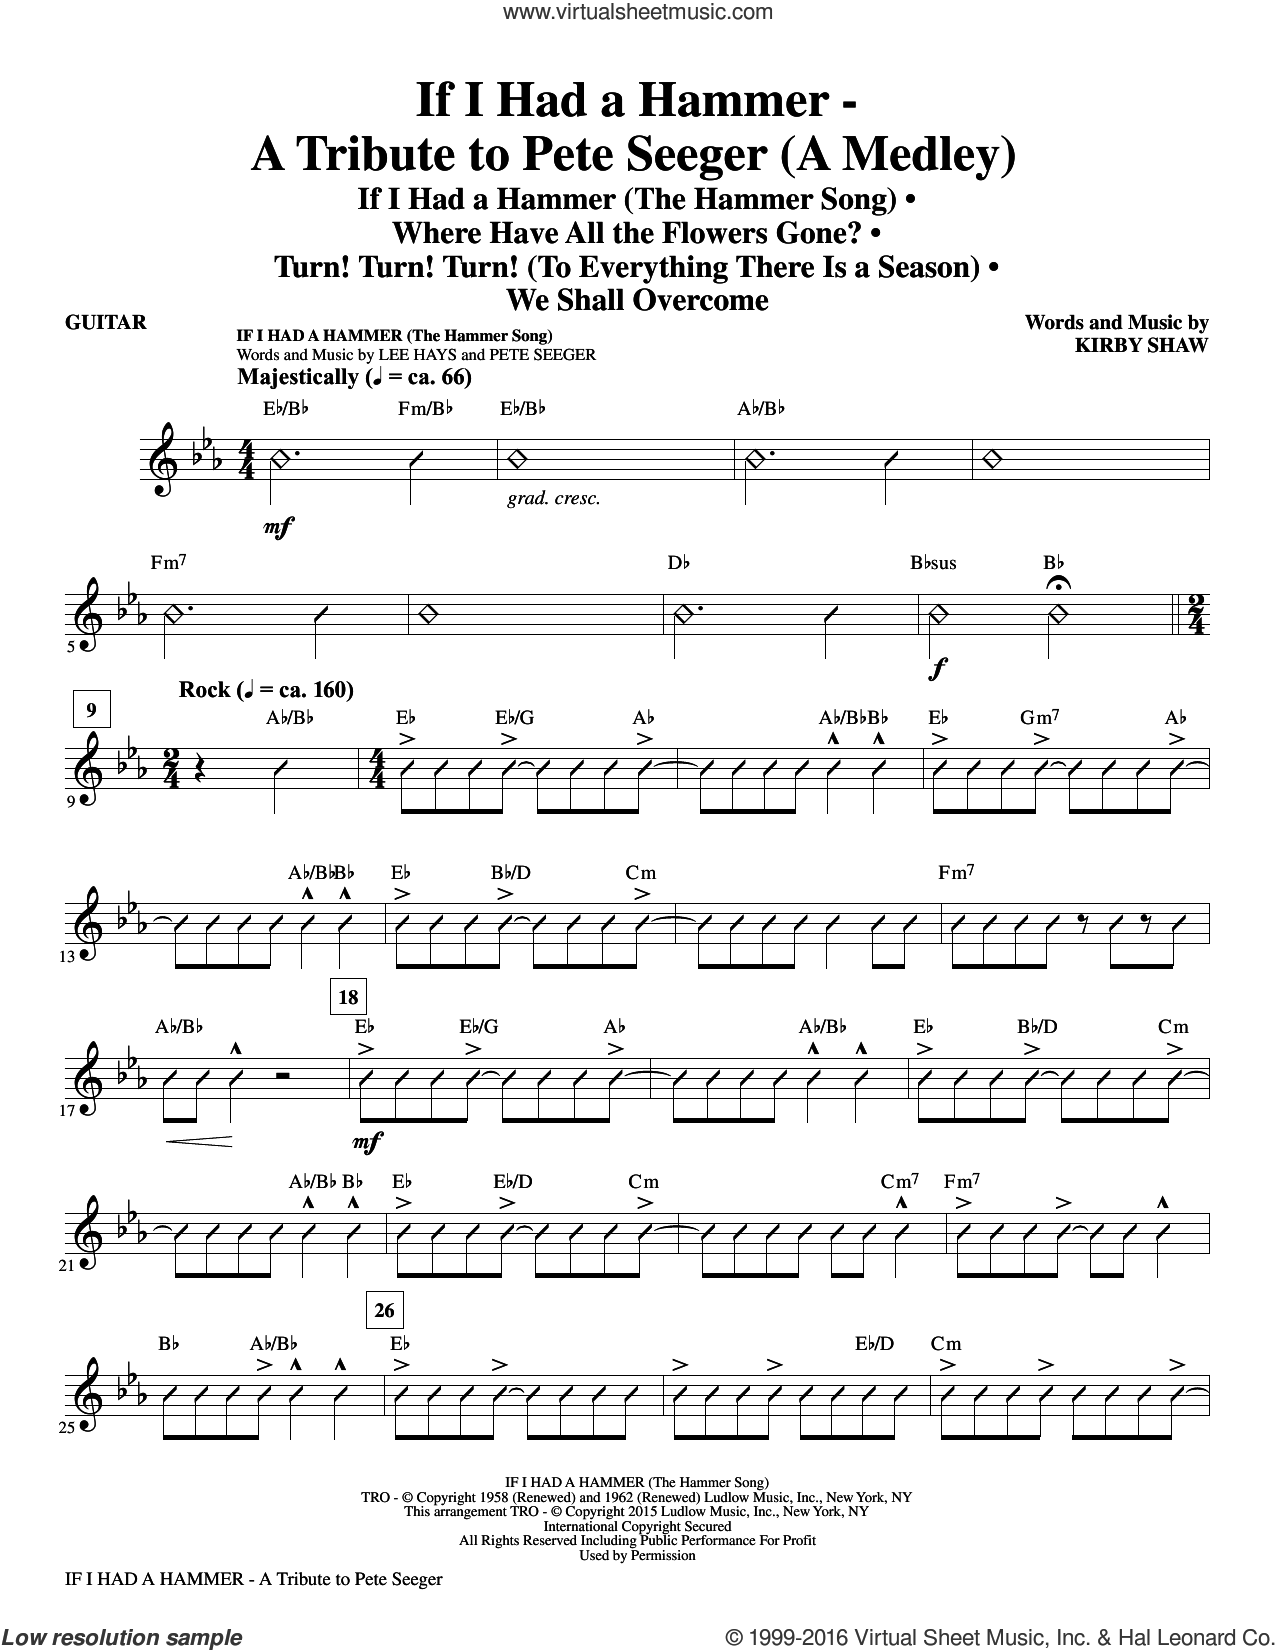 If I Had A Hammer, a tribute to pete seeger sheet music for orchestra/band (guitar) by Pete Seeger, Kirby Shaw, Peter, Paul & Mary, Trini Lopez and Lee Hays, intermediate. Score Image Preview.